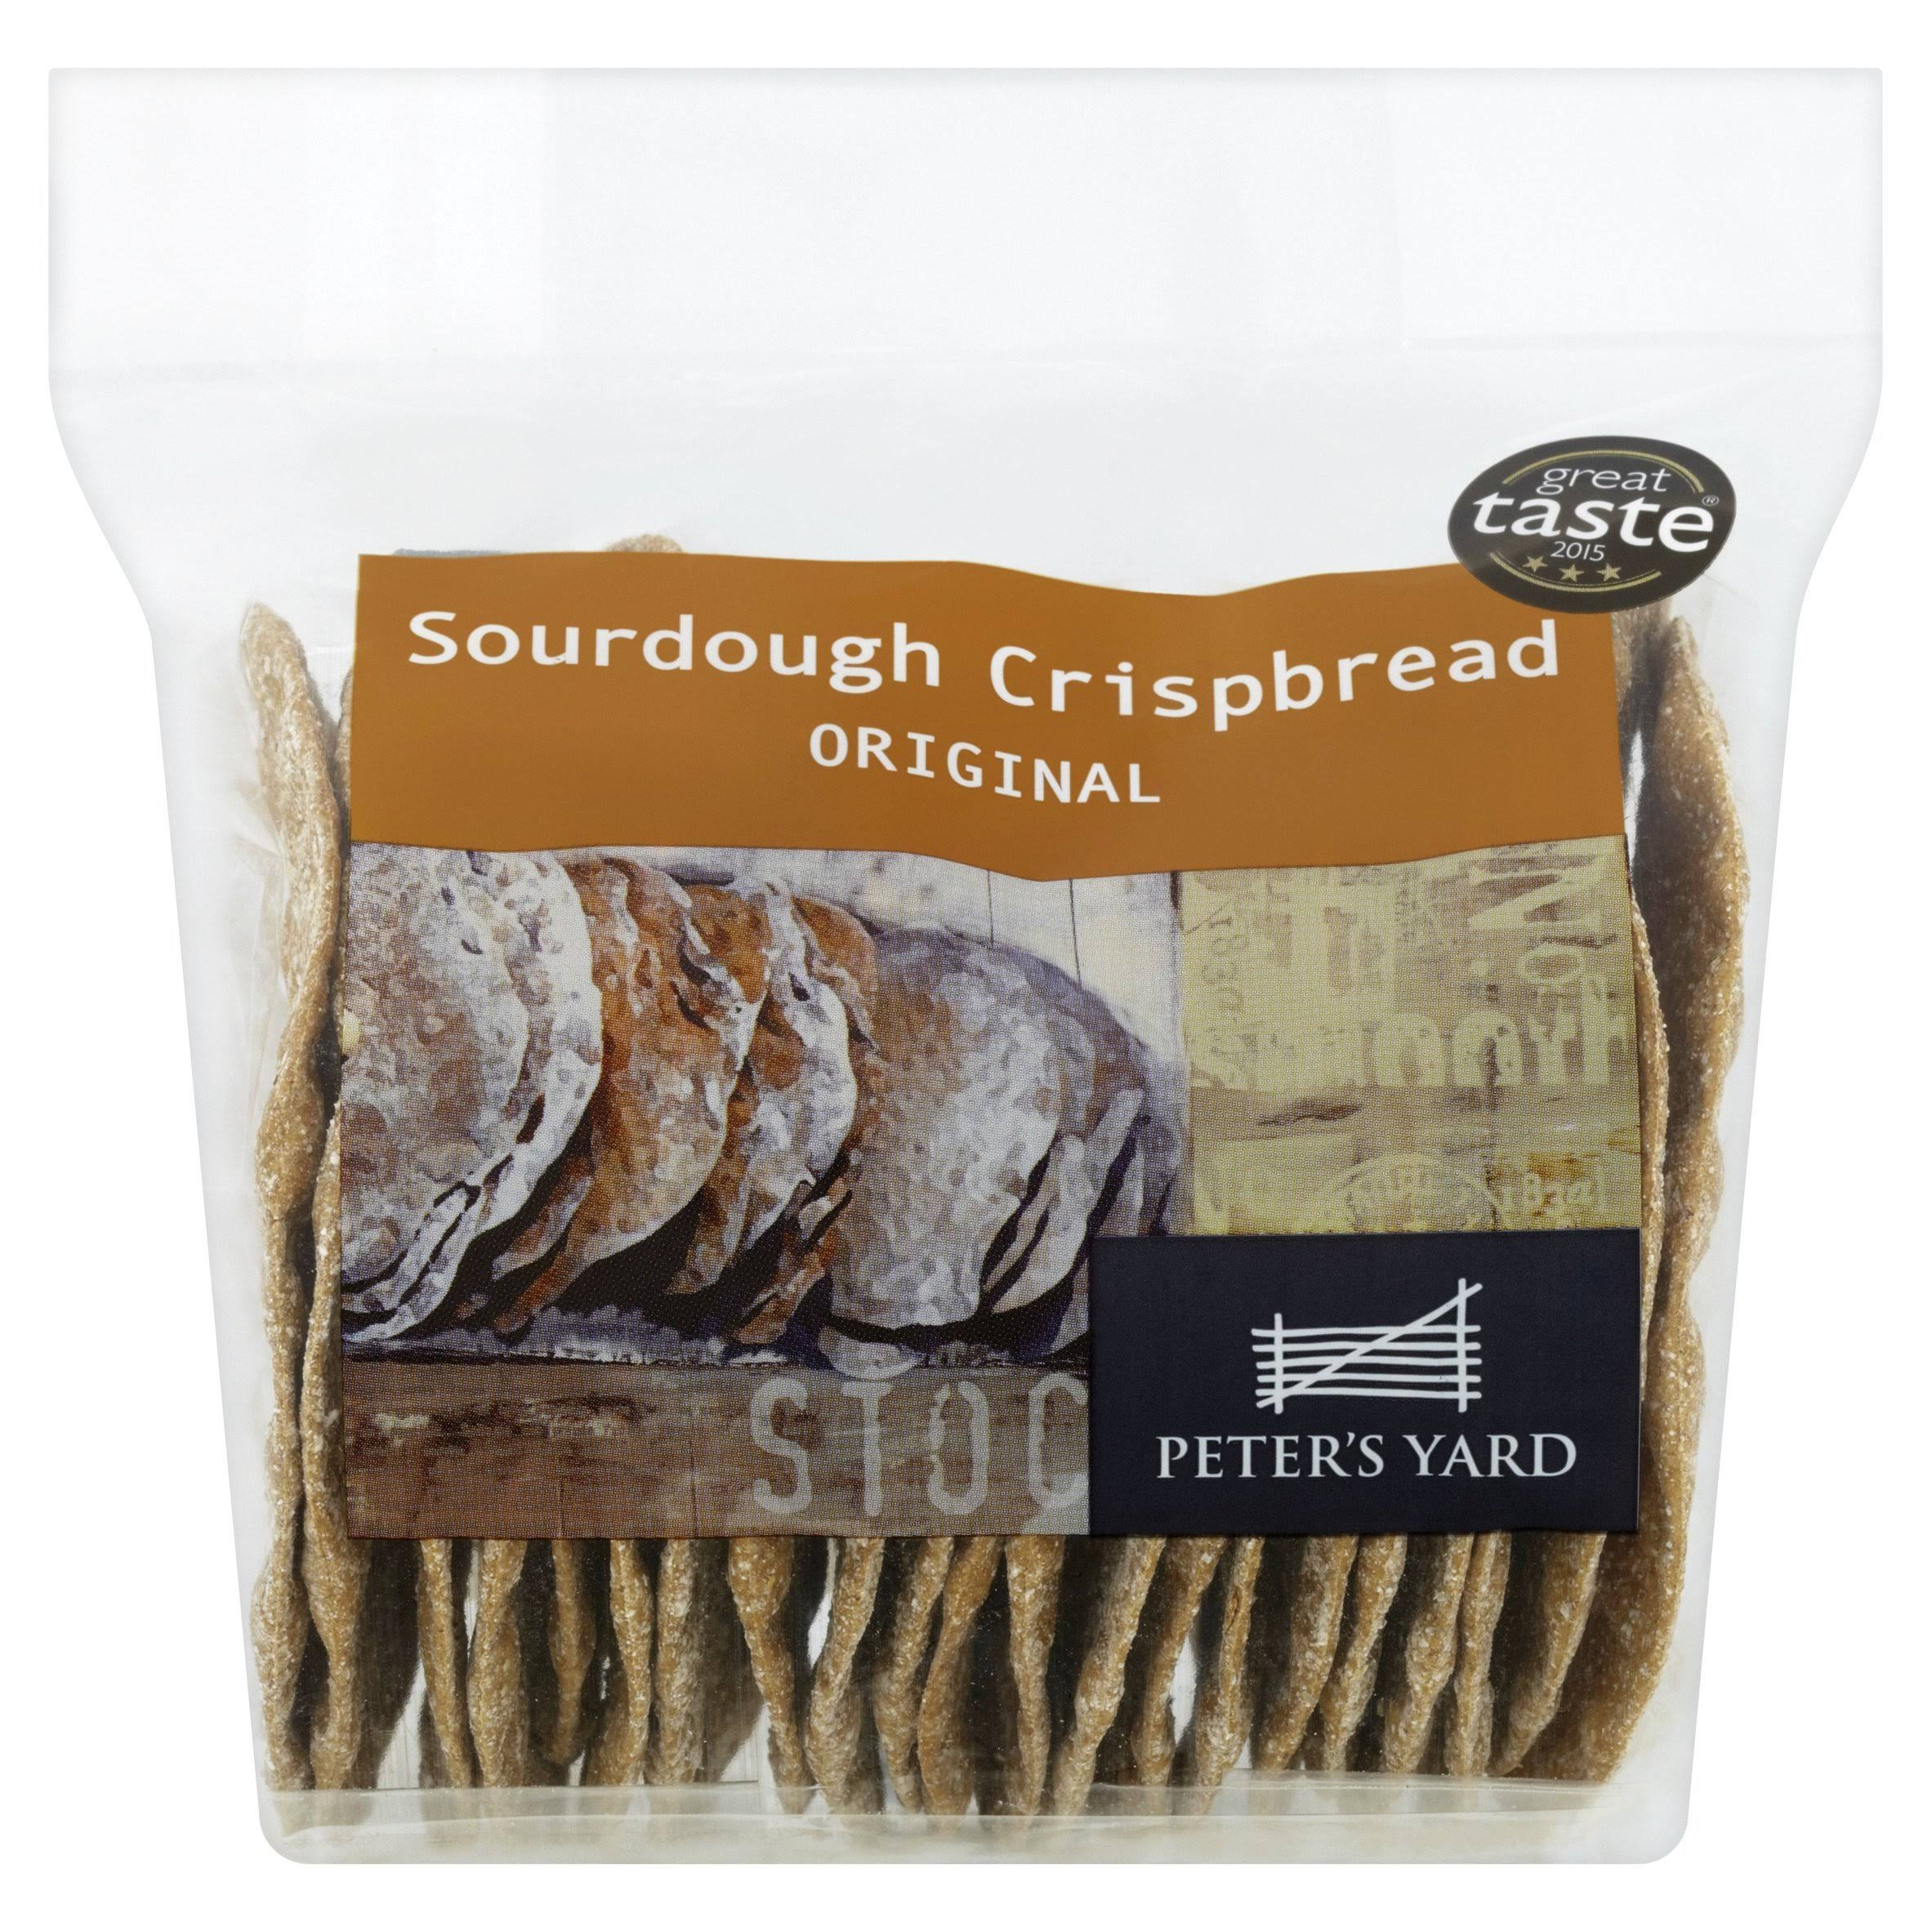 Peter's Yard Sourdough Crispbread Original - 200g